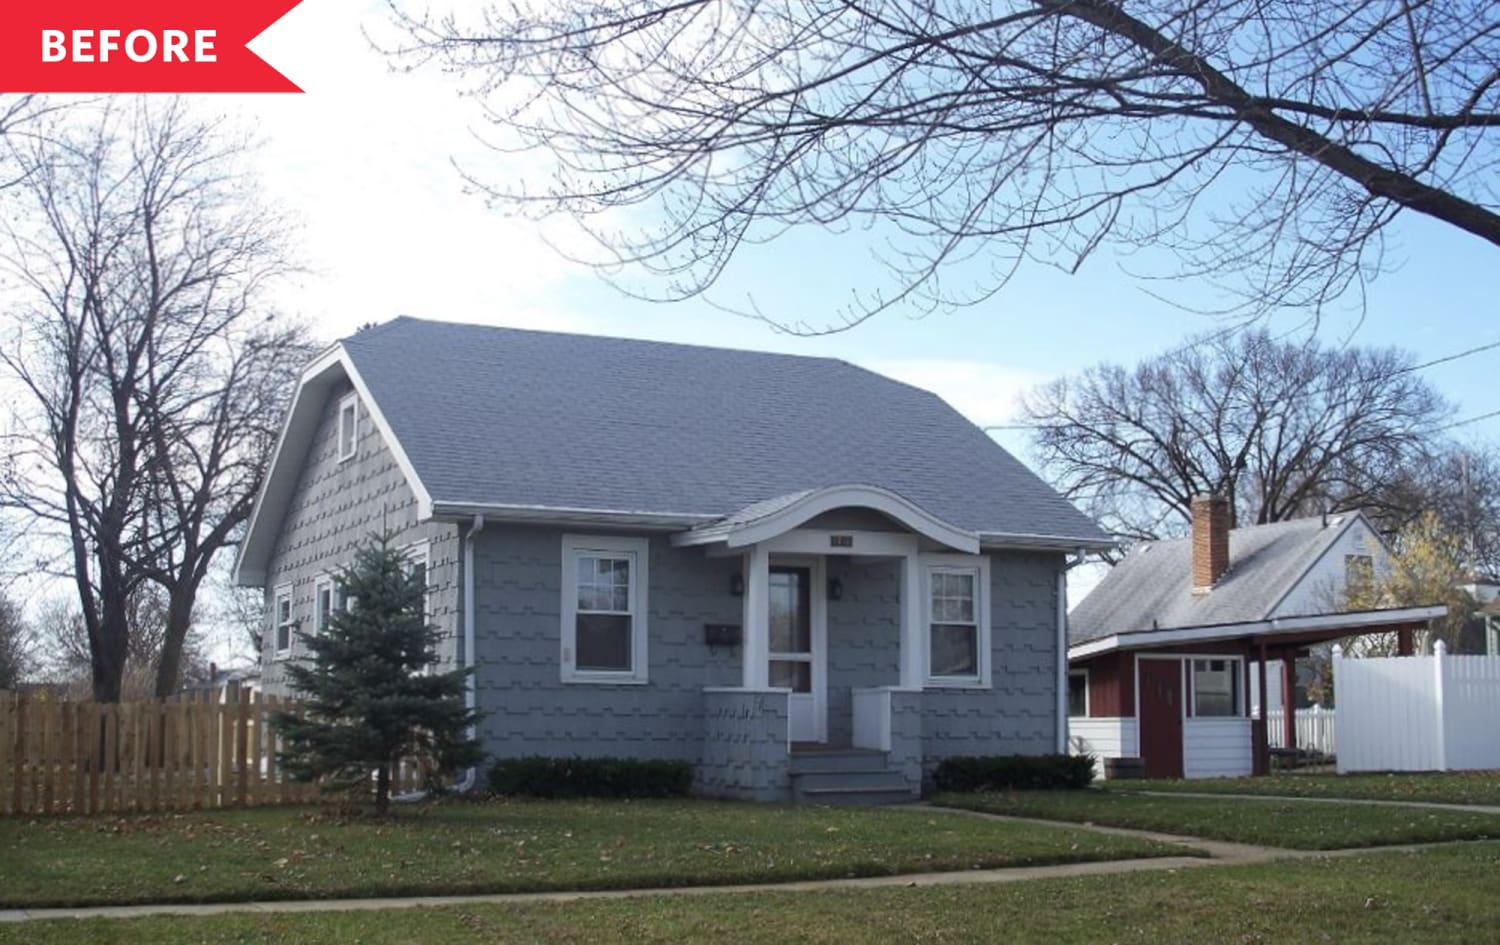 Before & After: 1920s Bungalow Remodel